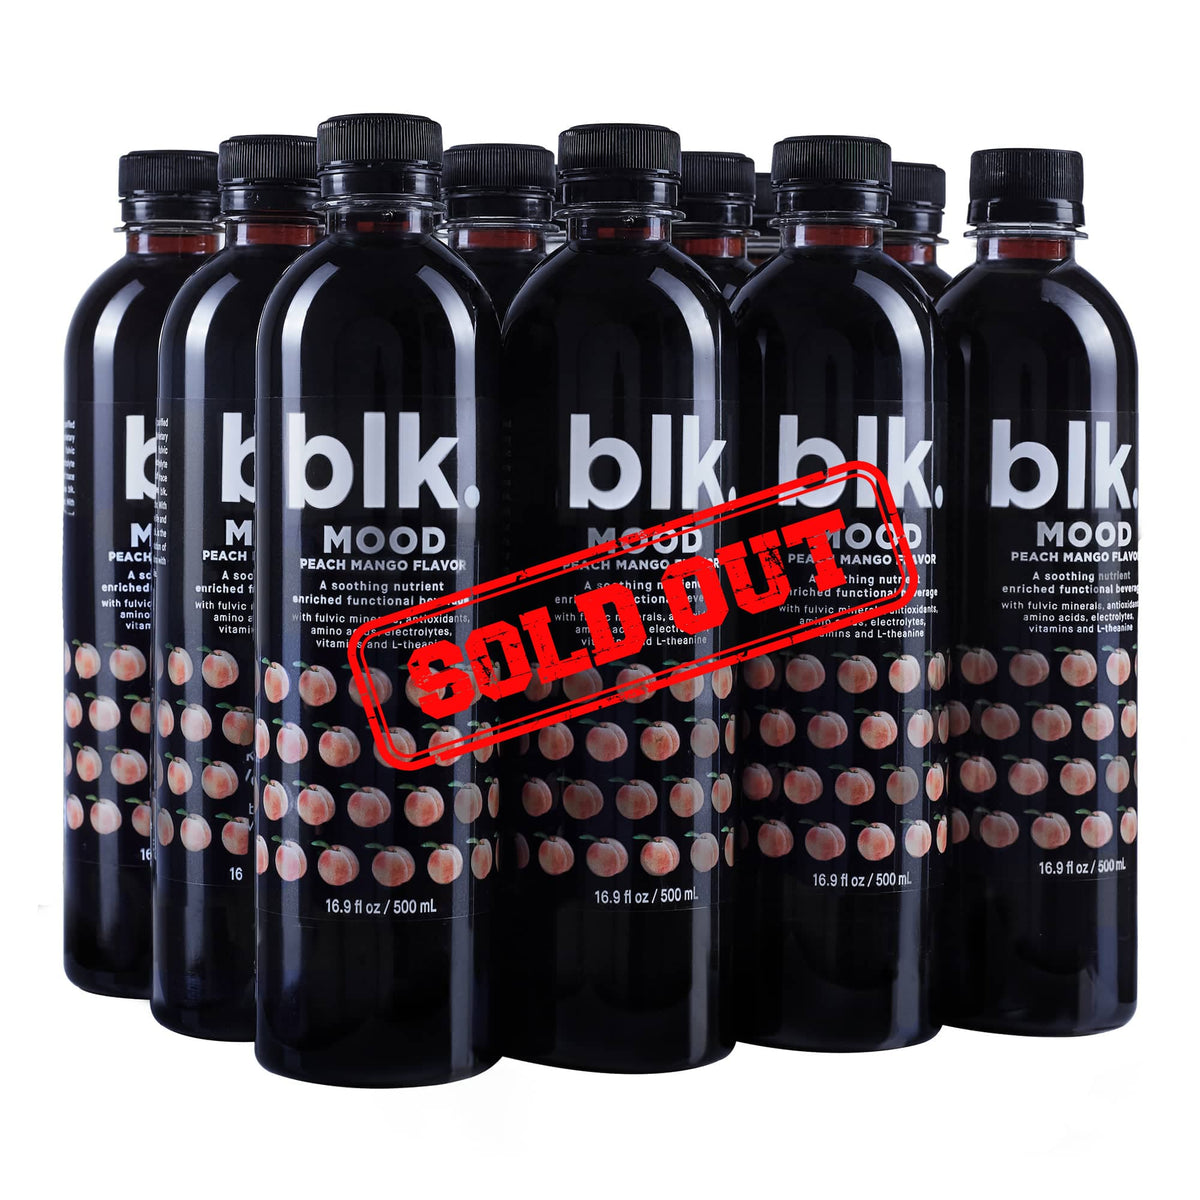 blk. MOOD Peach Mango Fulvic Enriched Water- 12pack